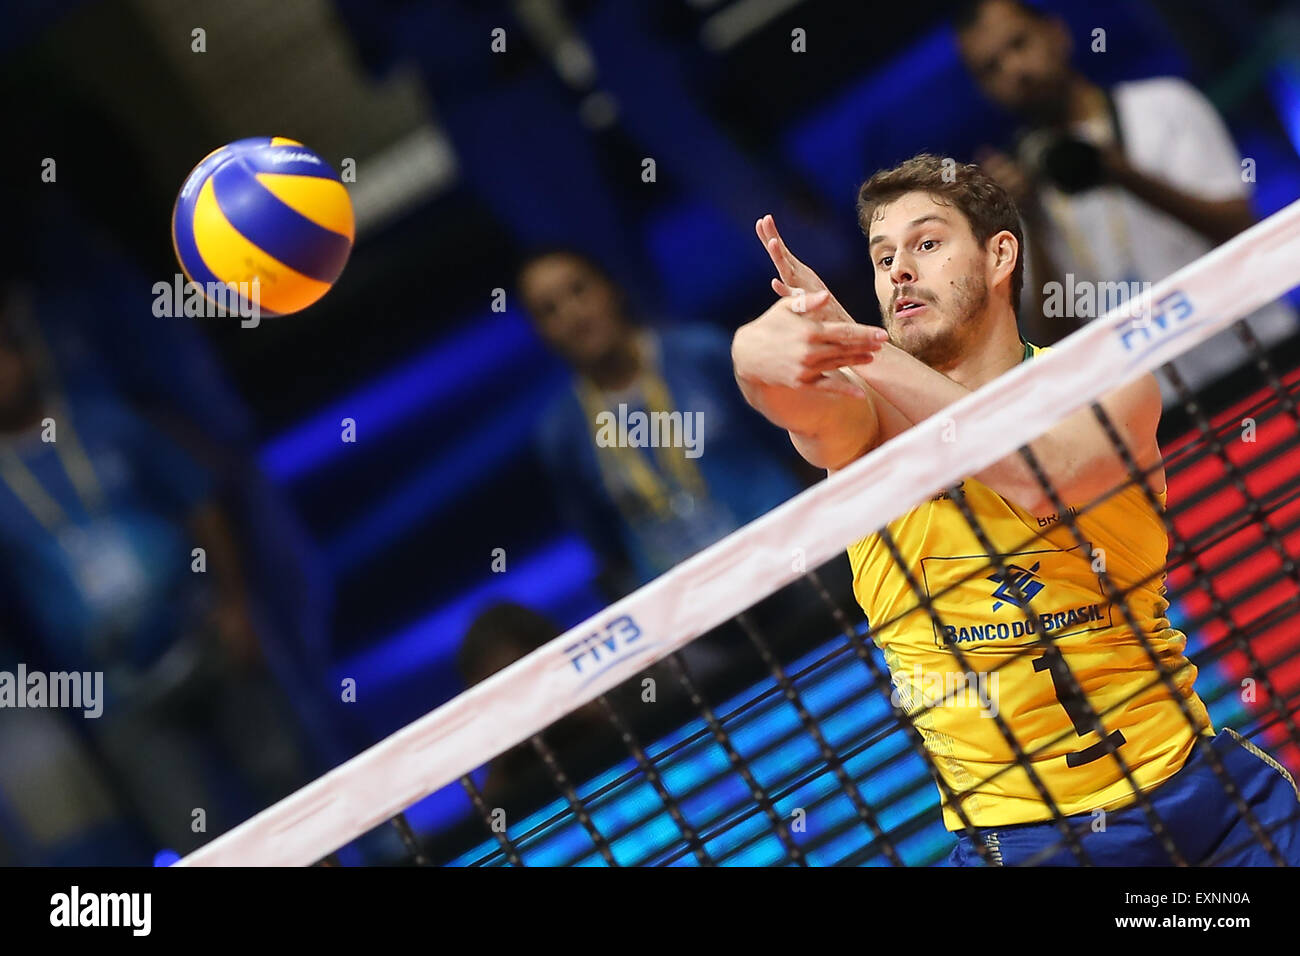 Rio De Janeiro, Brazil. 15th July, 2015. Brazil's Rezende Mossa spikes during a match between Brazil and France Stock Photo